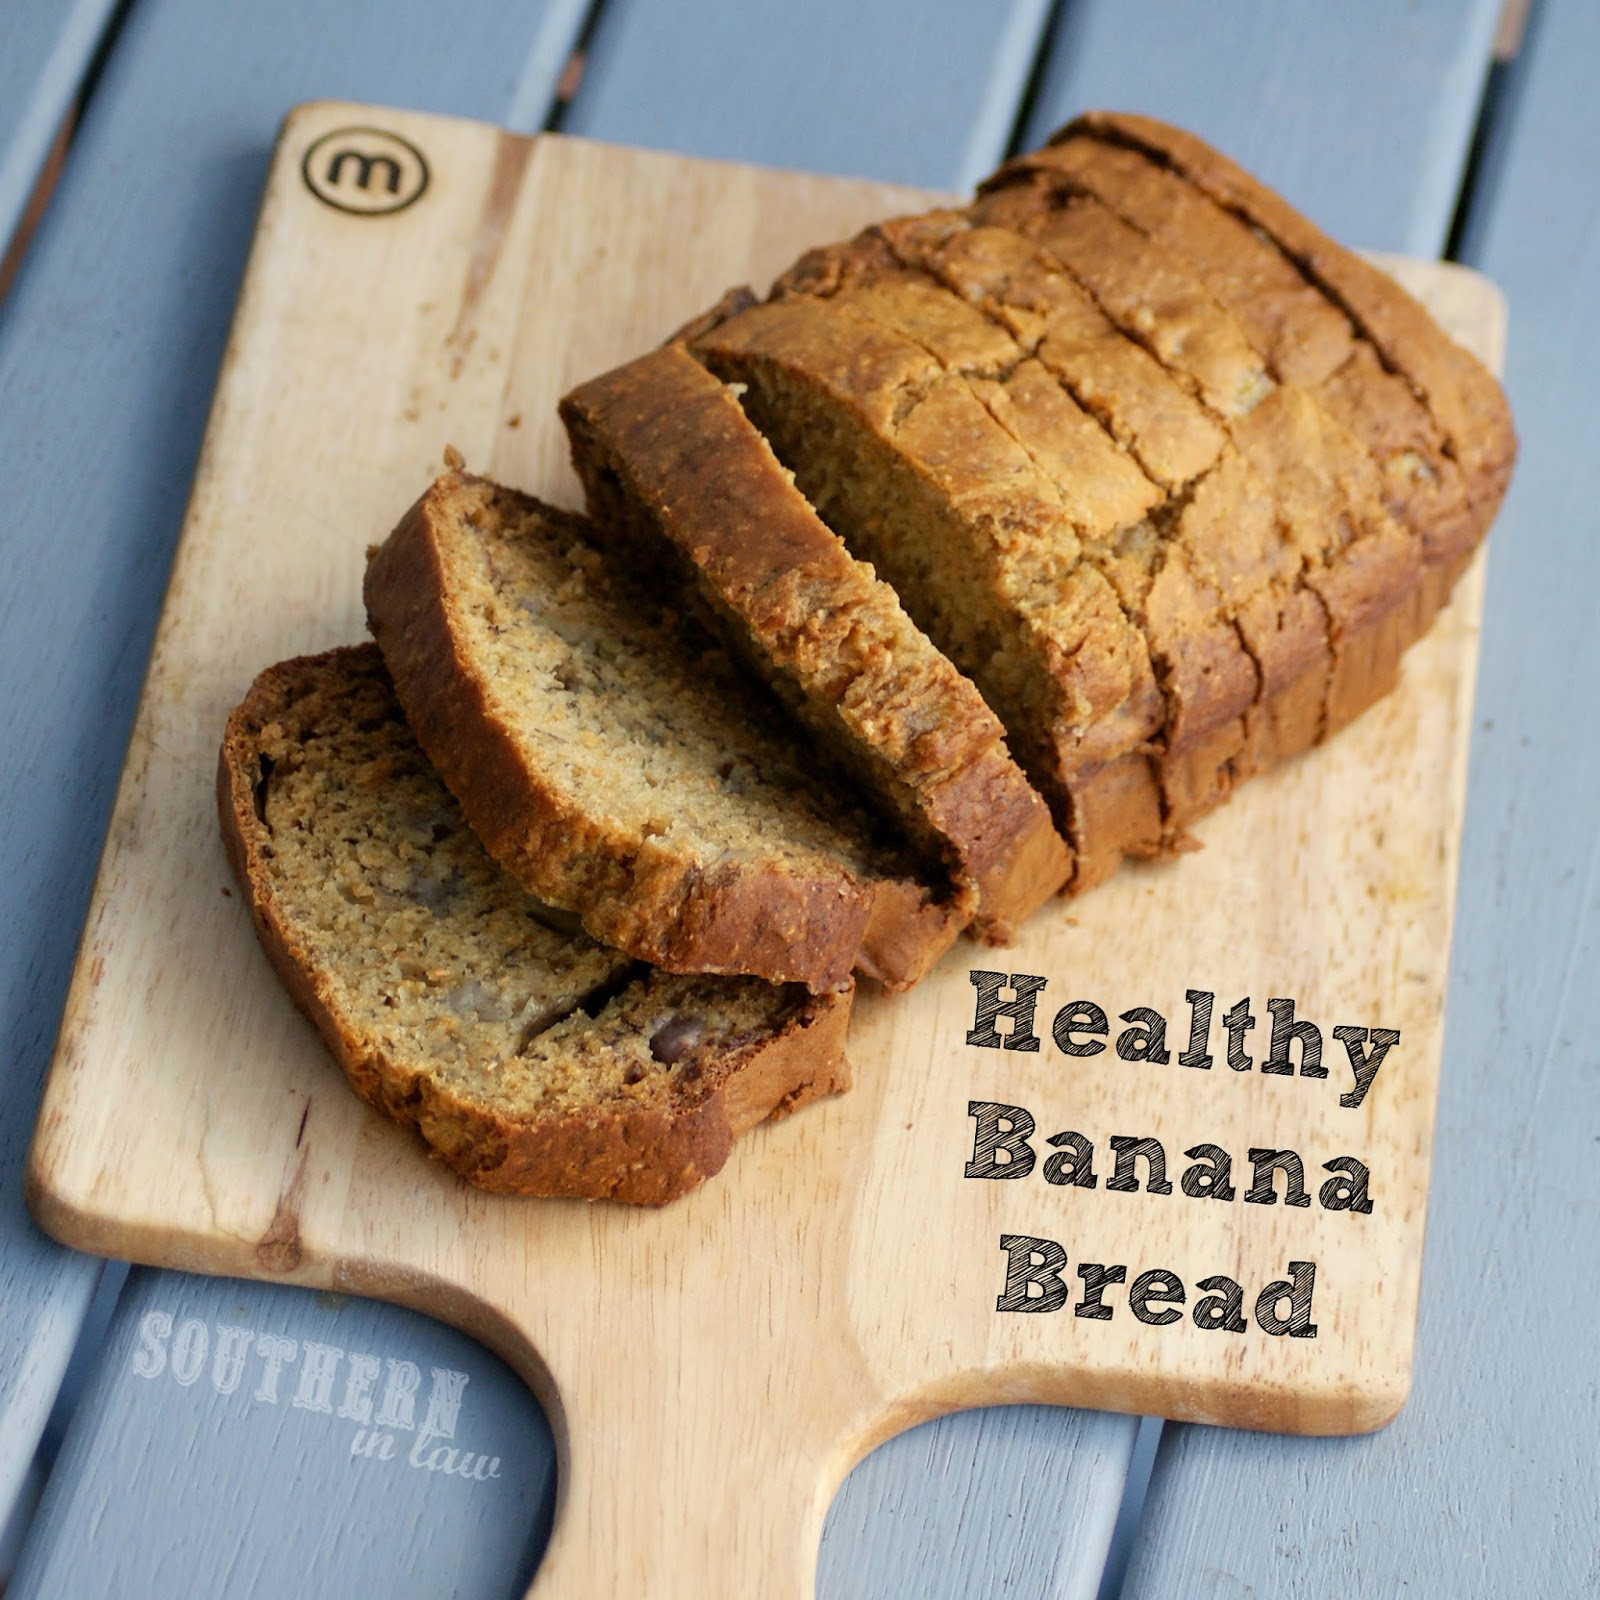 Banana Bread Healthy  Southern In Law Recipe Healthy Banana Bread